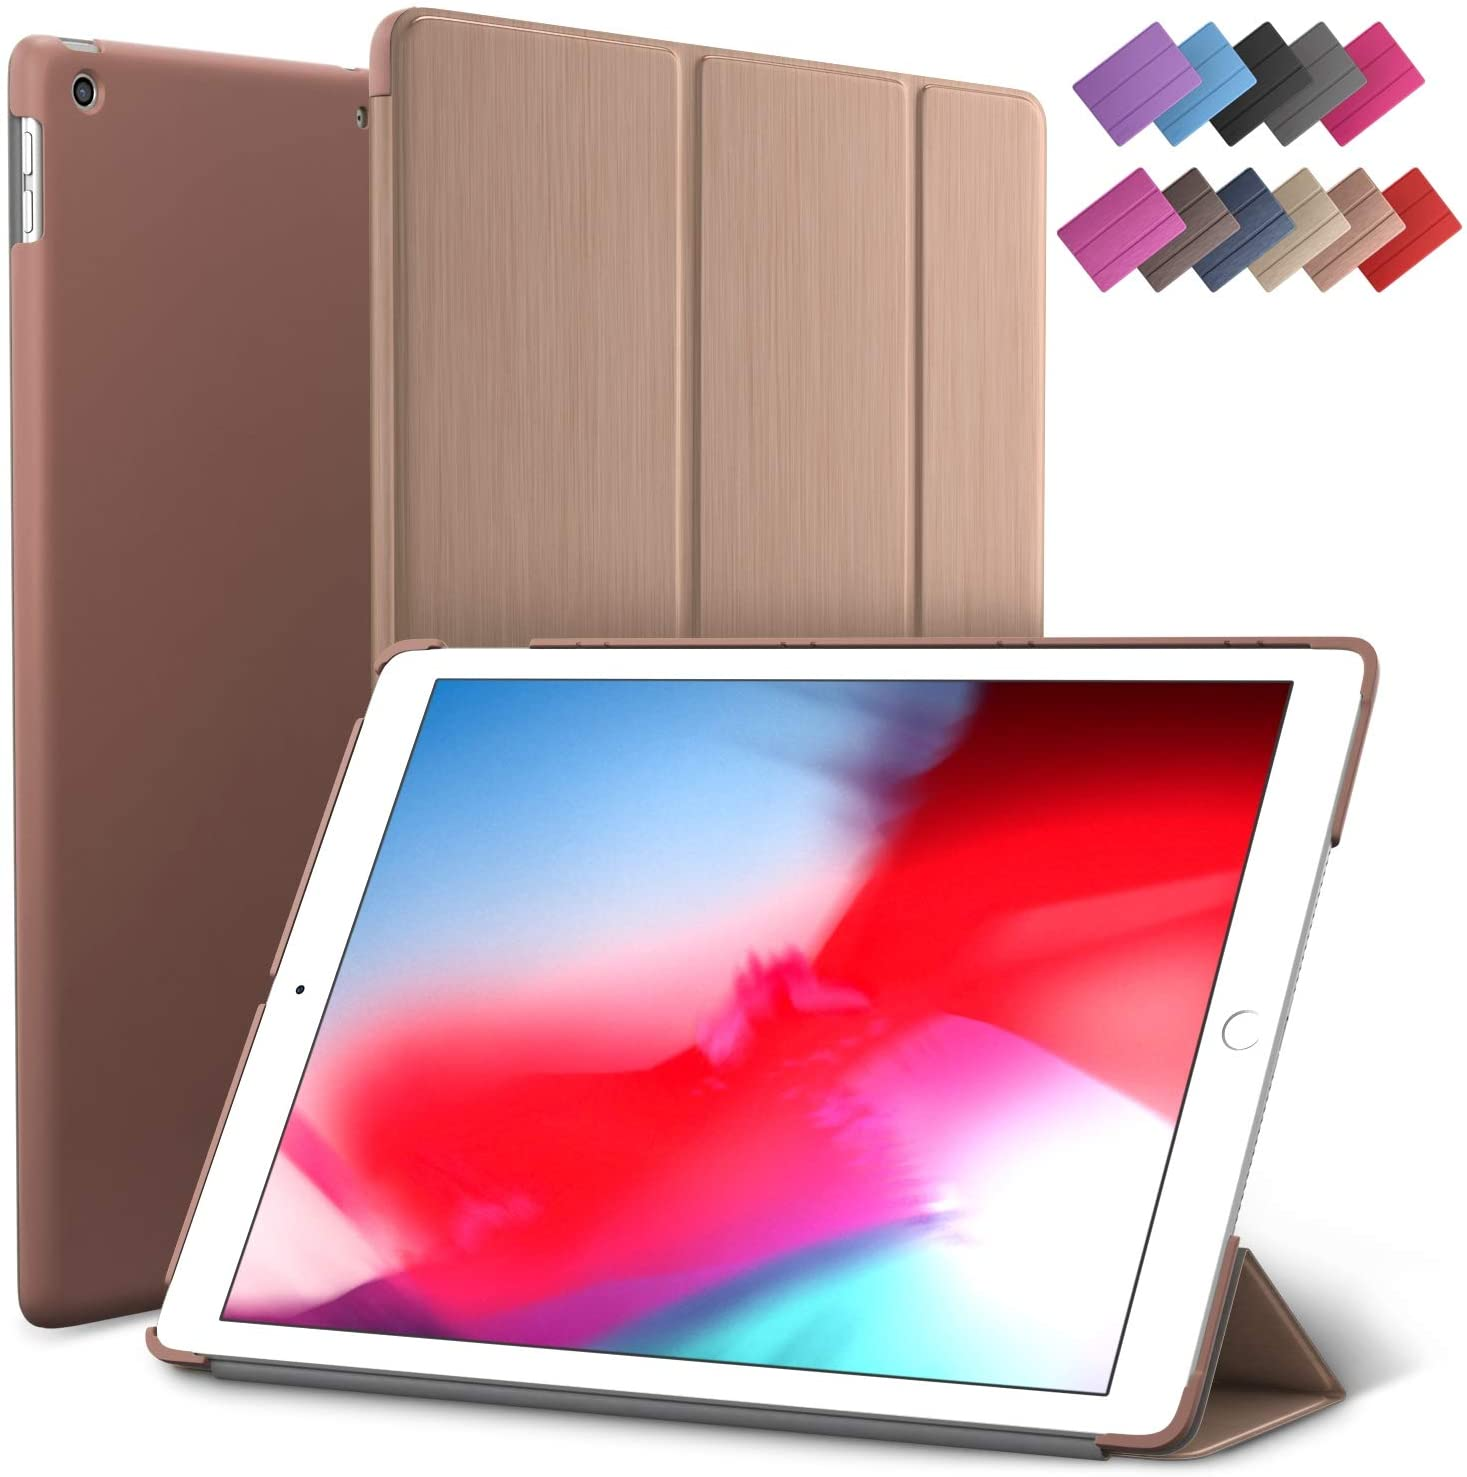 iPad Mini 5 case, ROARTZ Rose Gold Slim Fit Smart Rubber Coated Folio Case Hard Cover Light-Weight Wake/Sleep for Apple iPad Mini 5th Generation 2019 Model A2133 A2124 A2126 7.9-inch Display